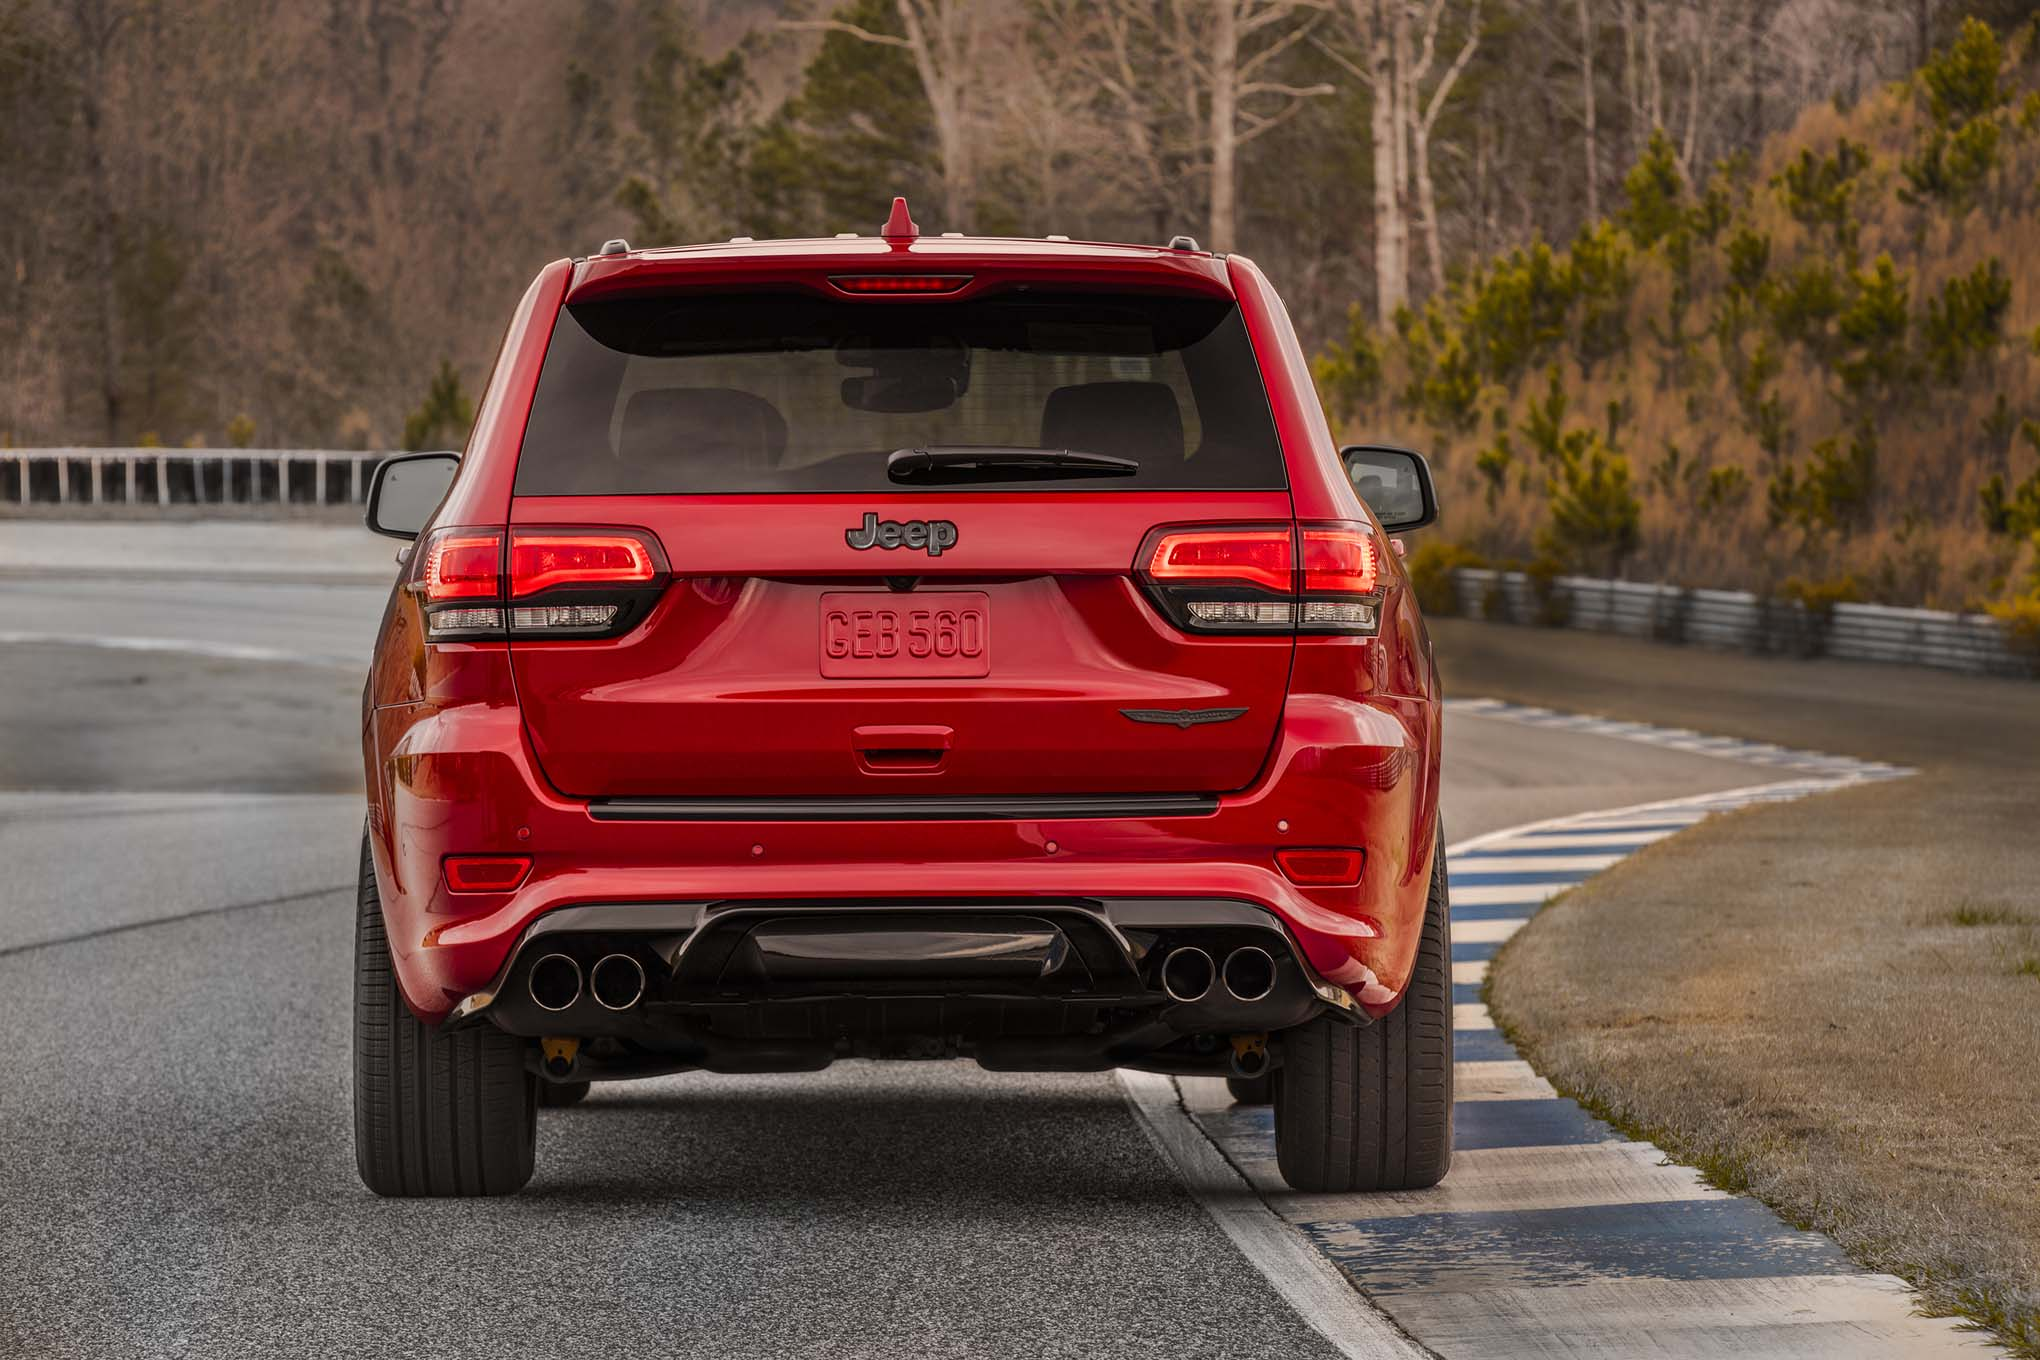 2018 jeep srt. contemporary srt u201cthe 2018 jeep grand cherokee trackhawk delivers astounding performance  numbers backed by renowned srt engineering that combines worldclass onroad  to jeep srt a